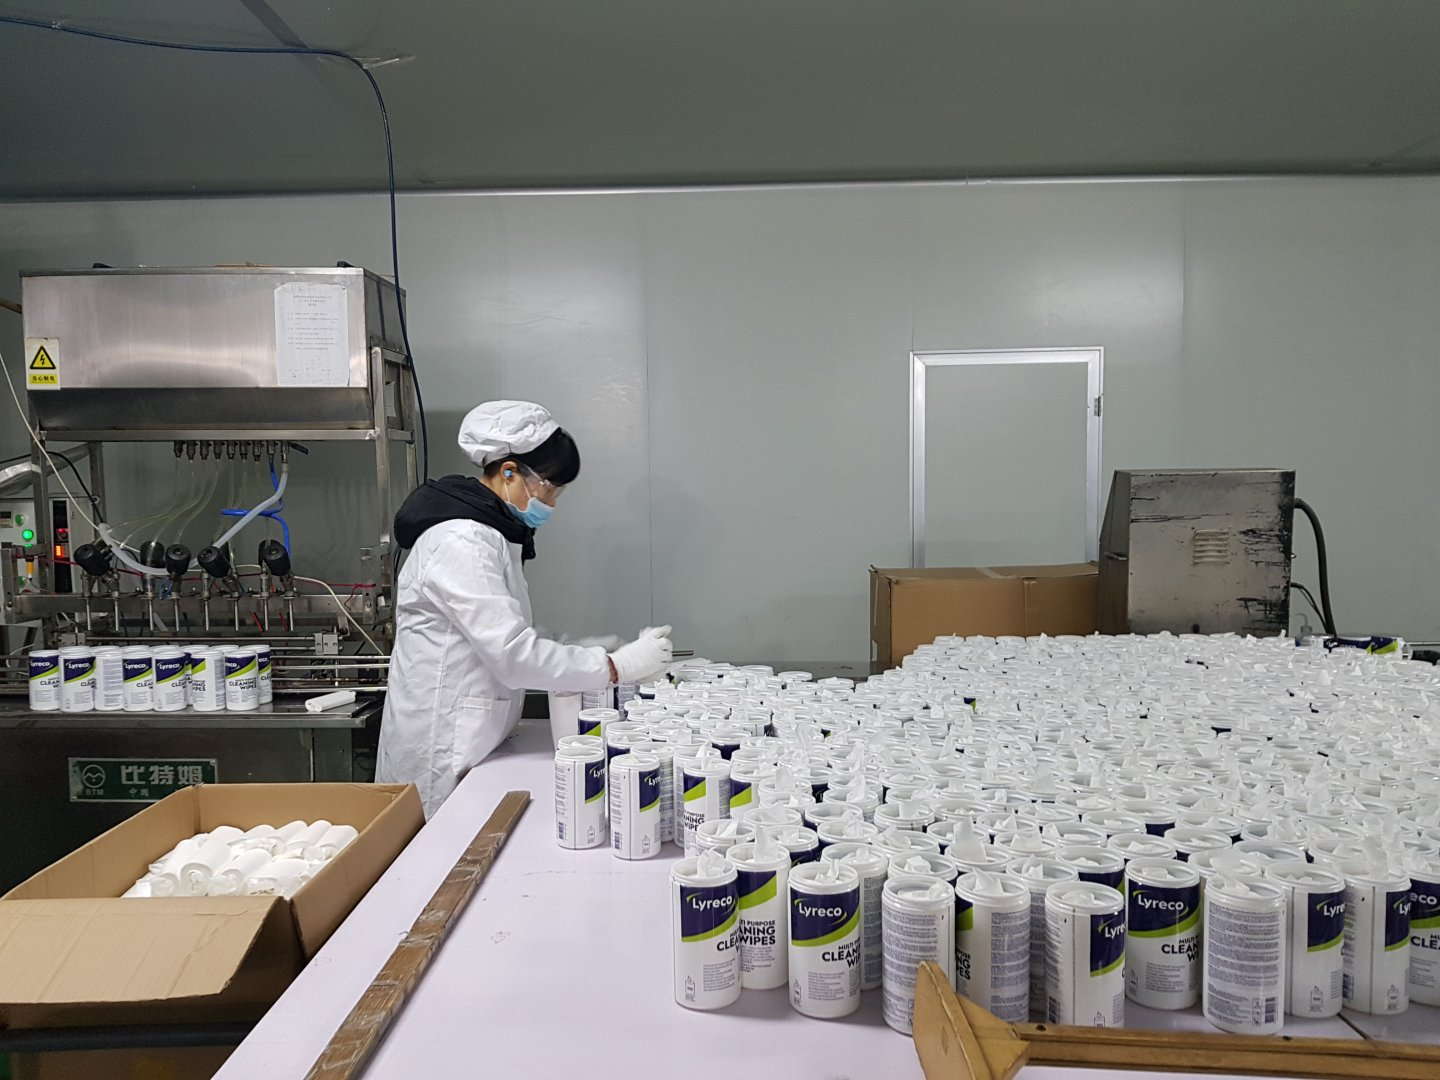 A worker is sorting Lyreco products